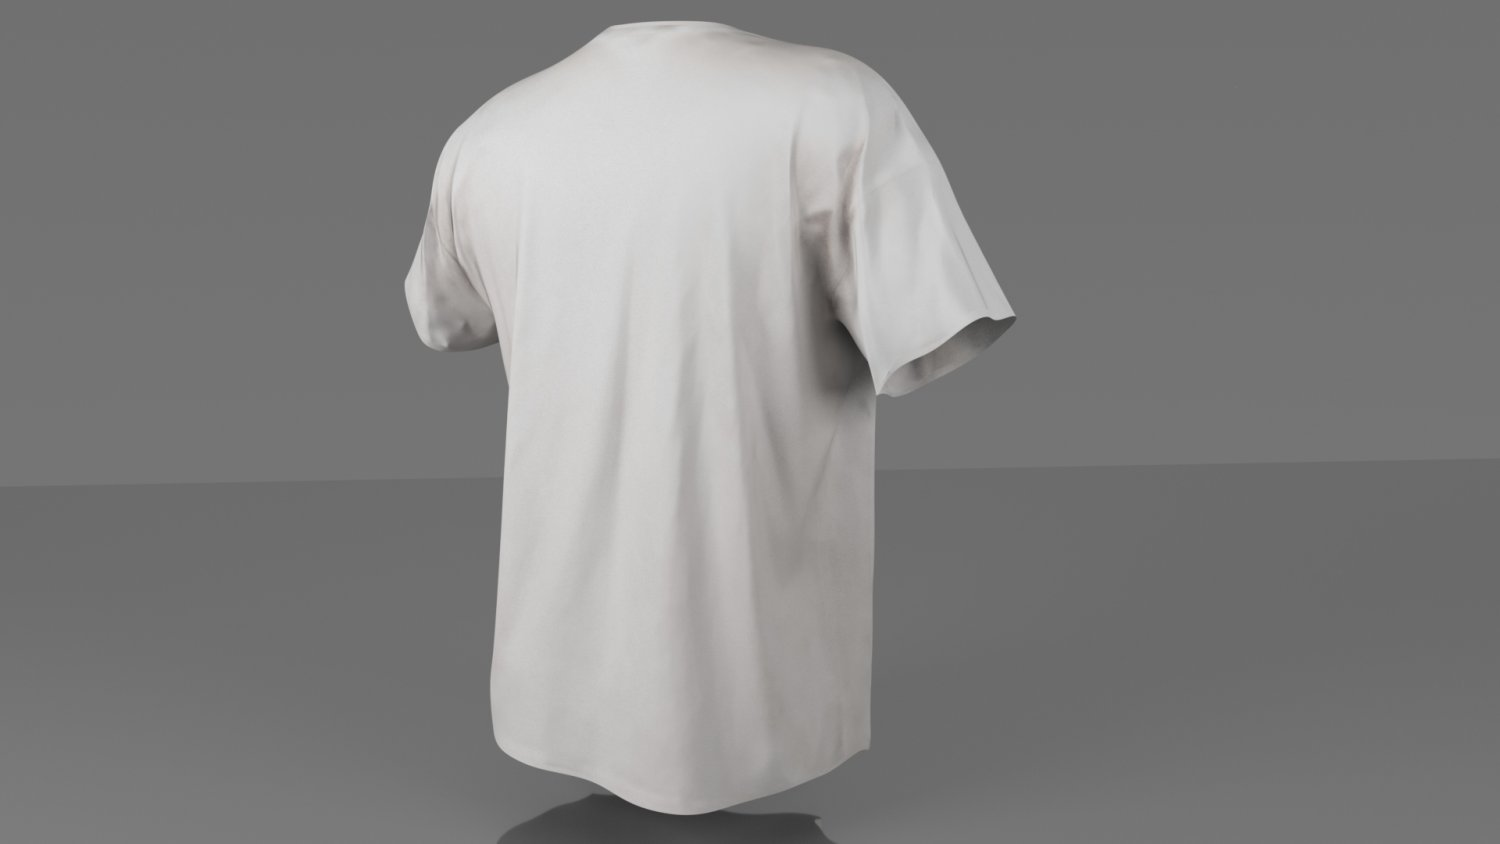 6dbdf8187e1 T-shirt low poly 3D Model in Clothing 3DExport